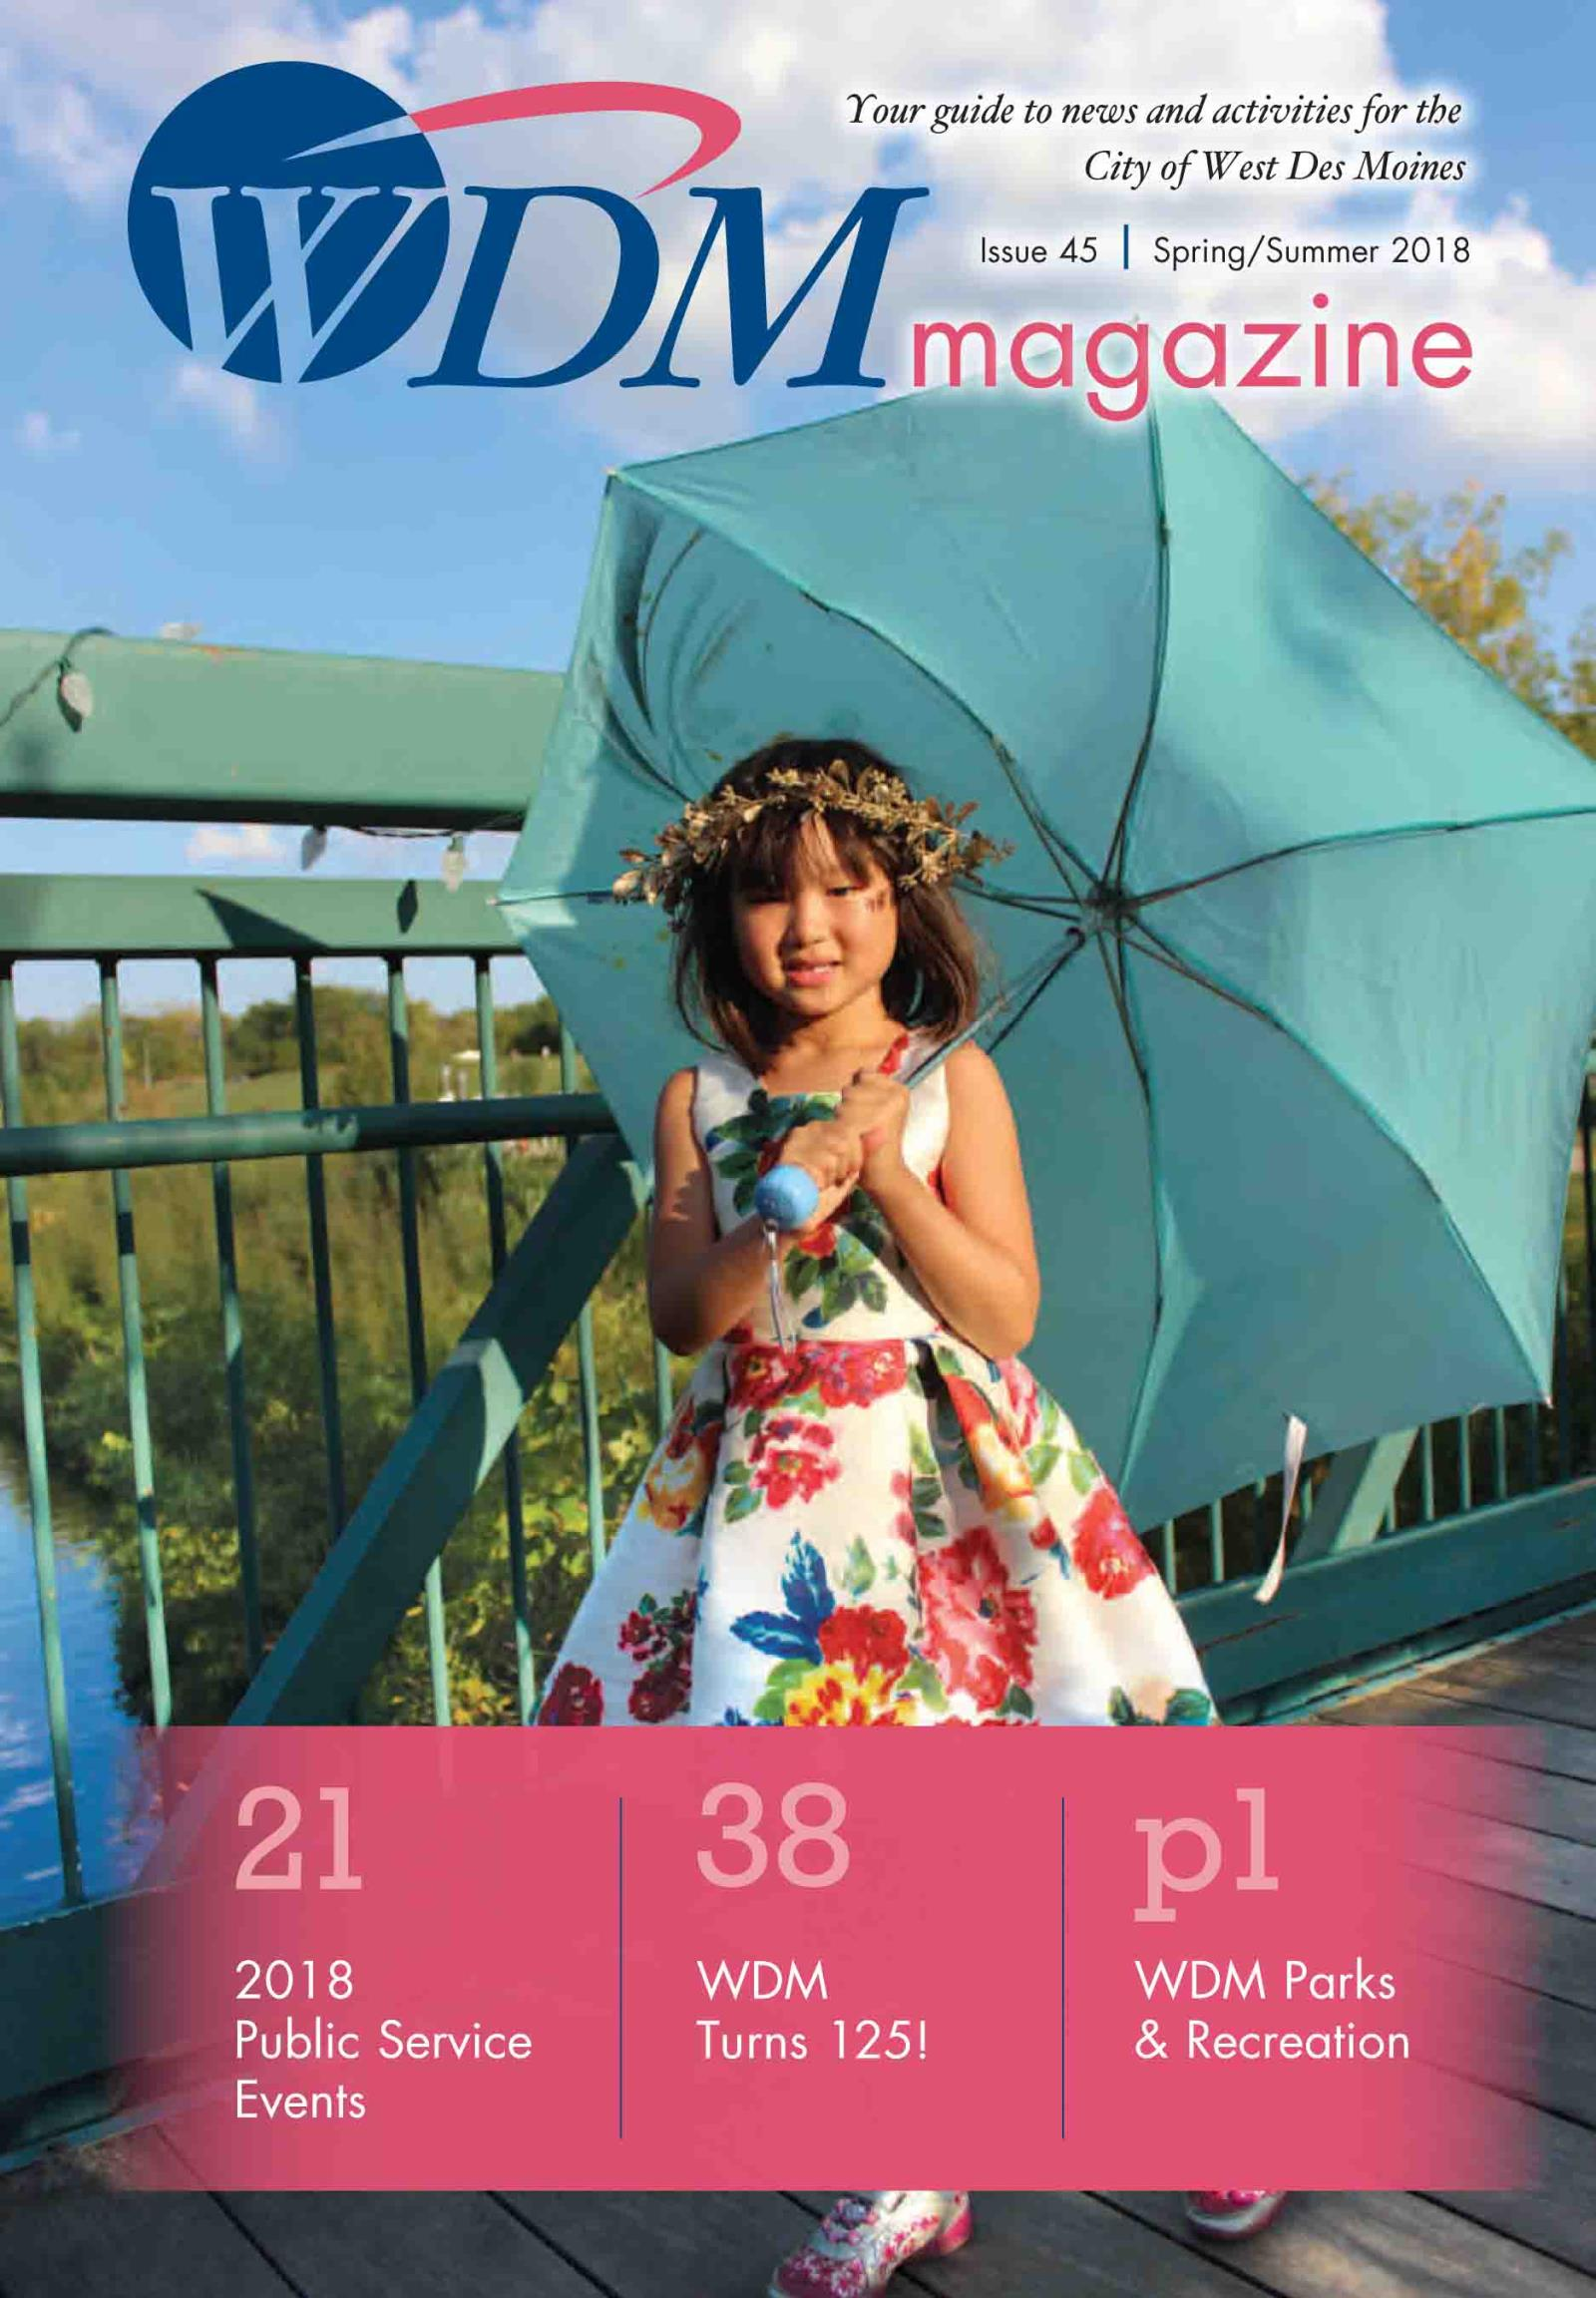 WDM Magazine Issue 45 Spring Summer 2018